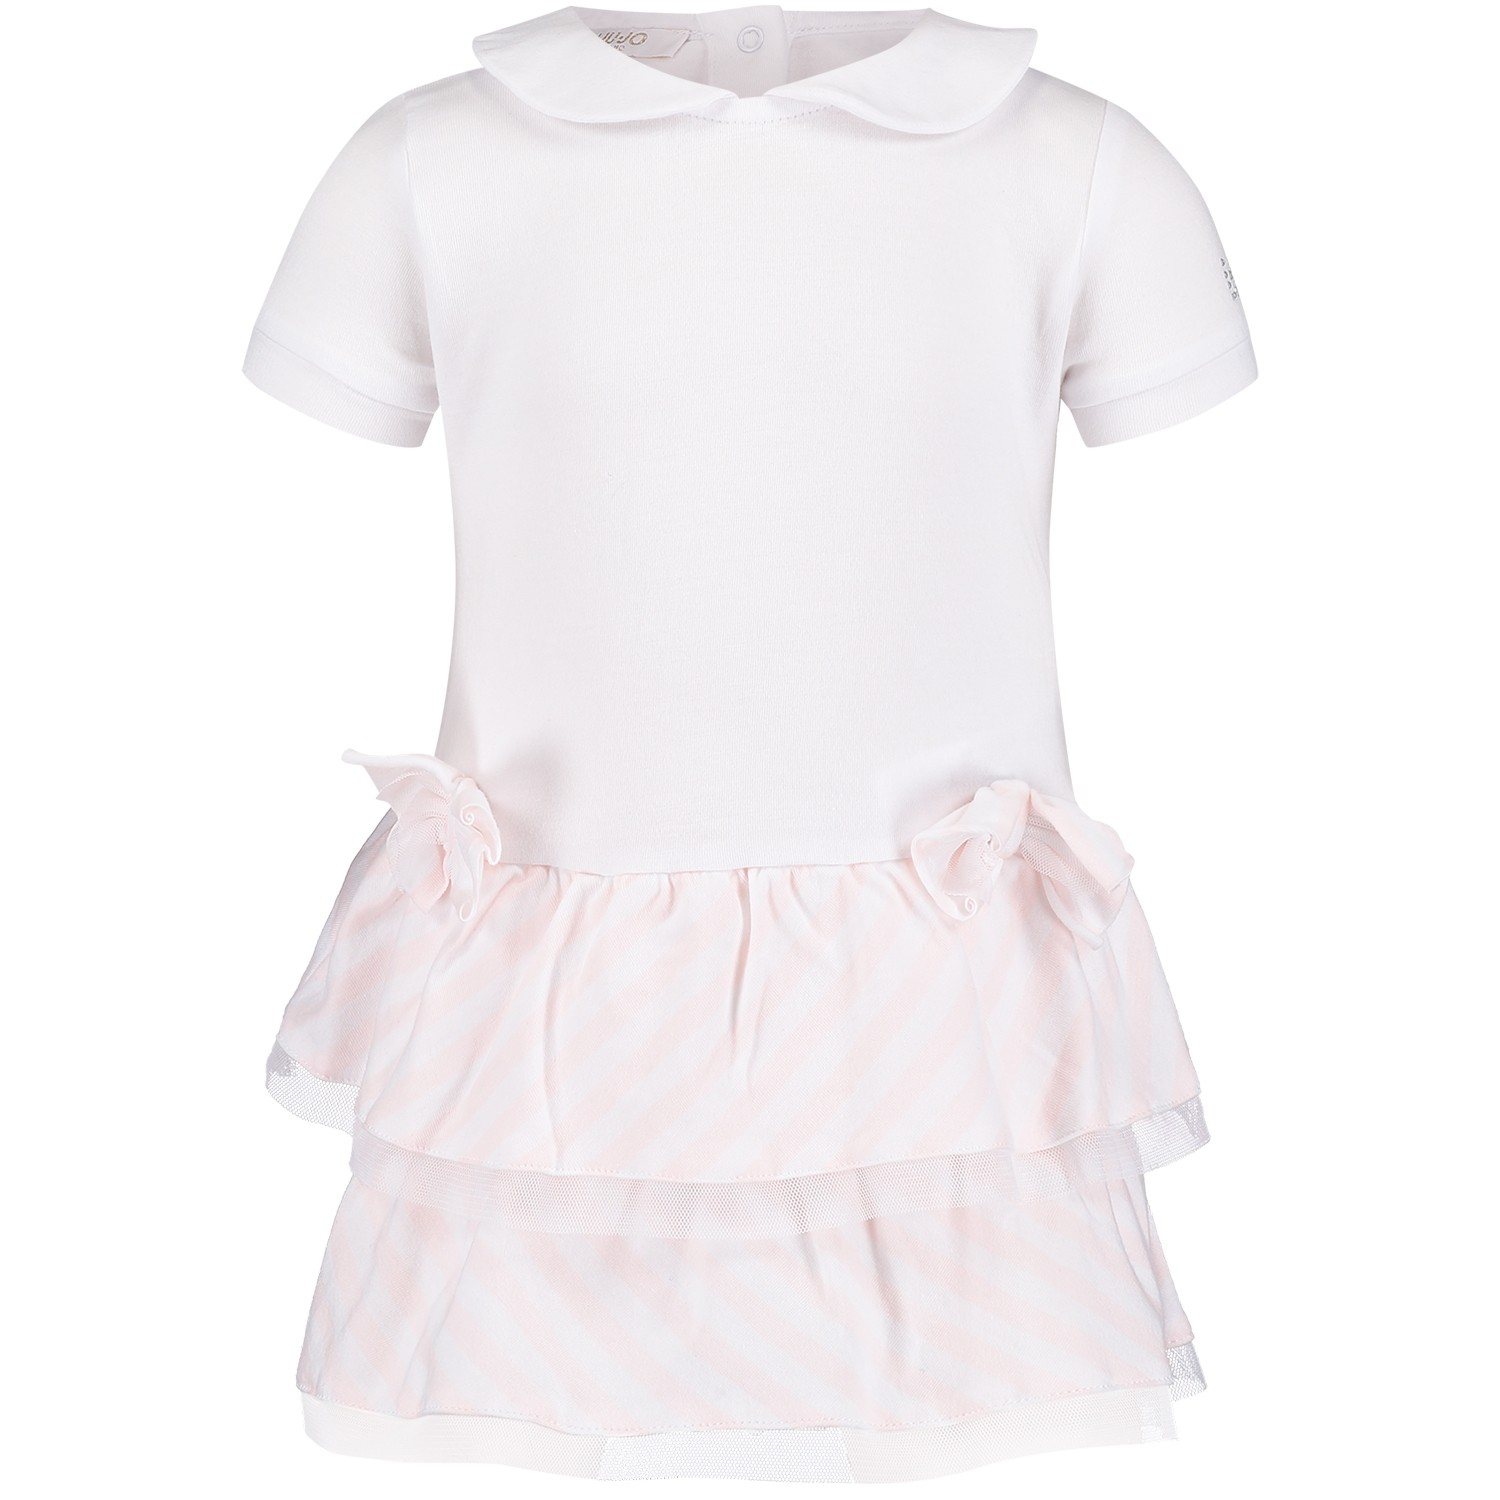 Picture of Liu Jo H18014 baby jumpsuit light pink